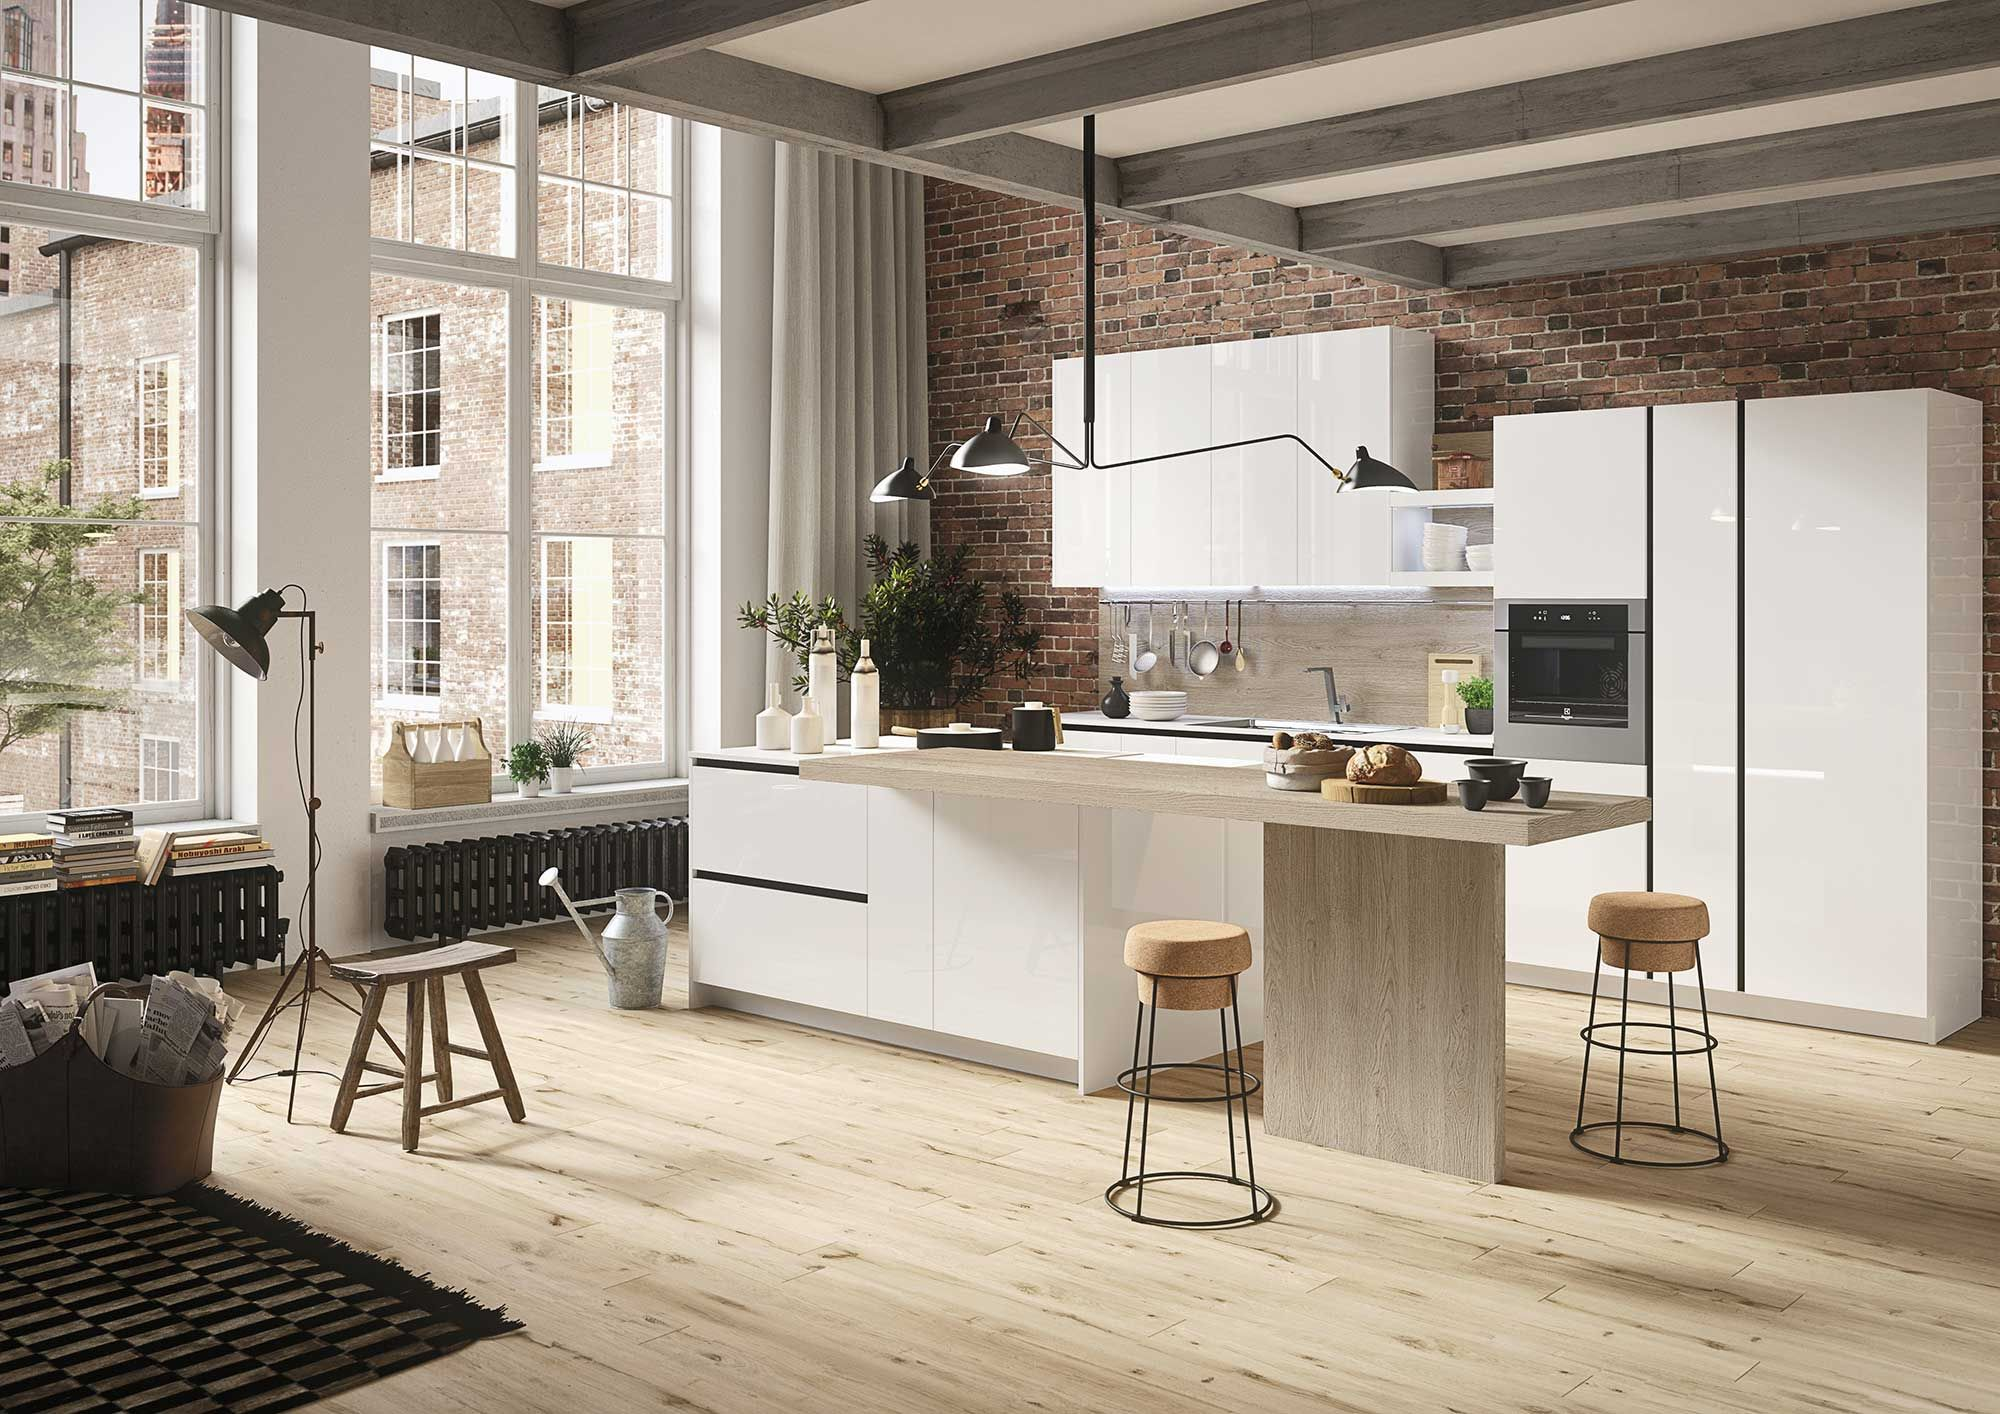 FIRST Contemporary style kitchen by Snaidero design